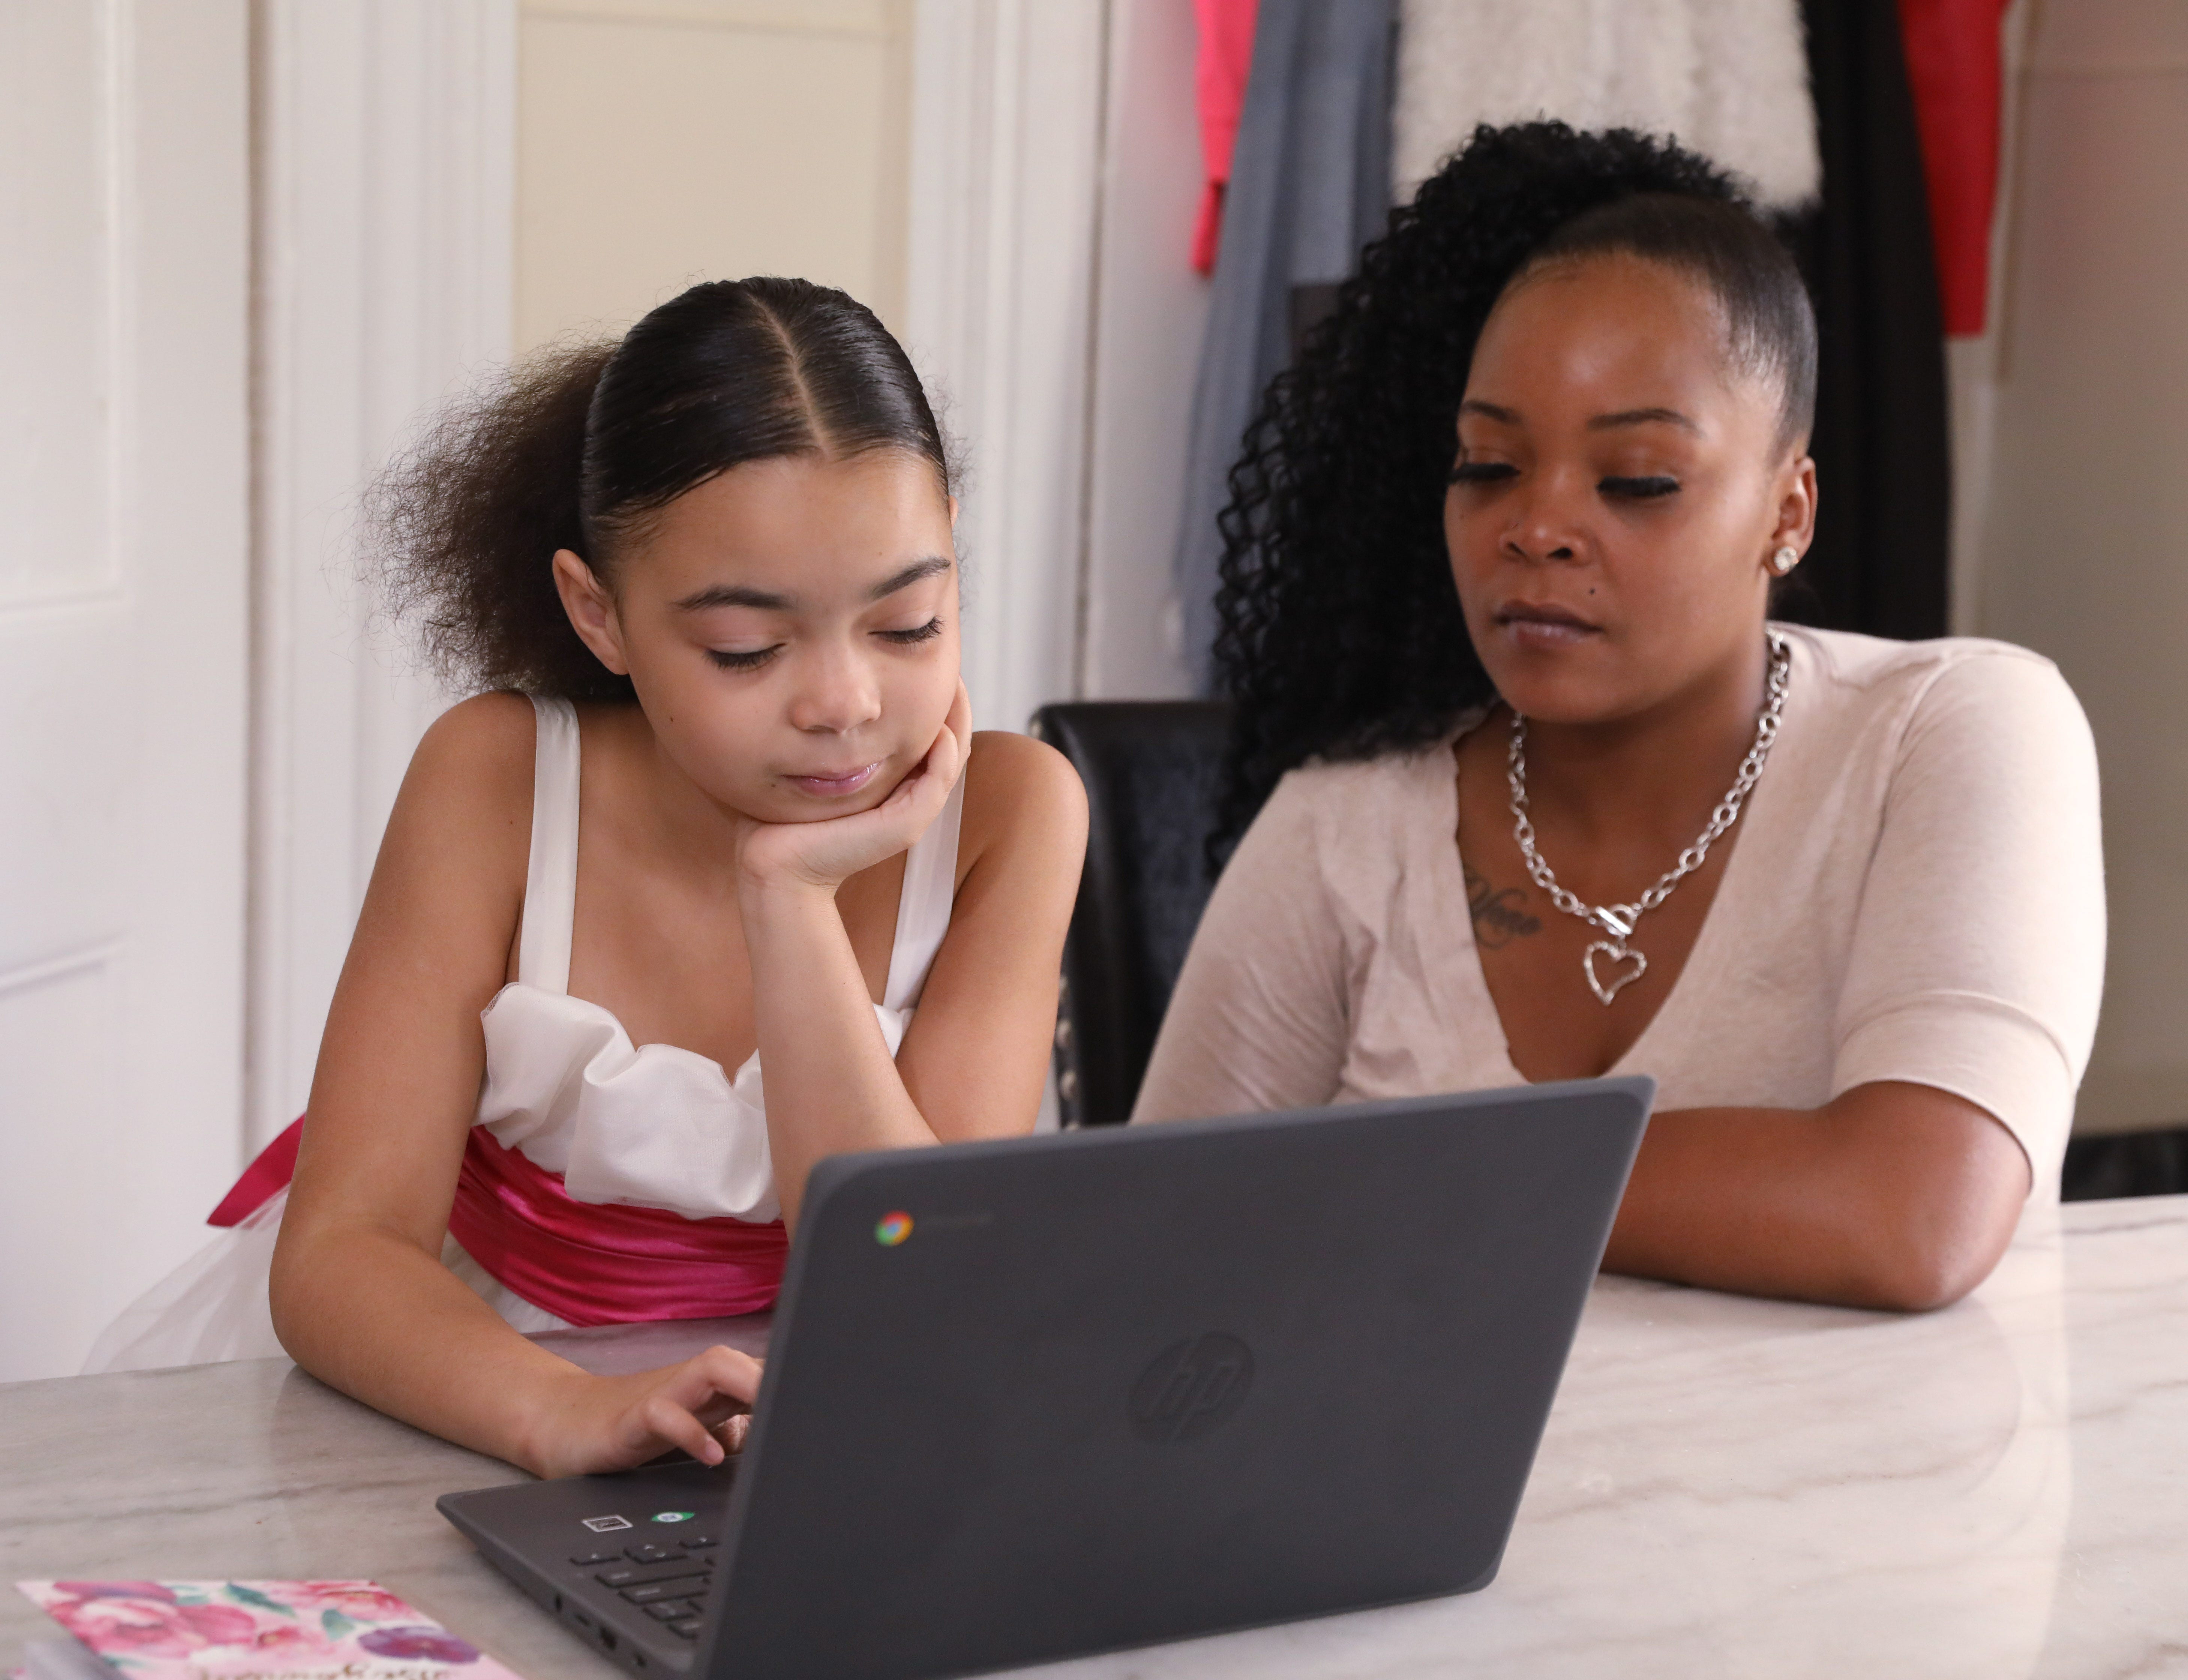 Kendra Smith helps her daughter Diamond Yeno submit her math homework at their home in Poughkeepsie on Sept. 24, 2020.